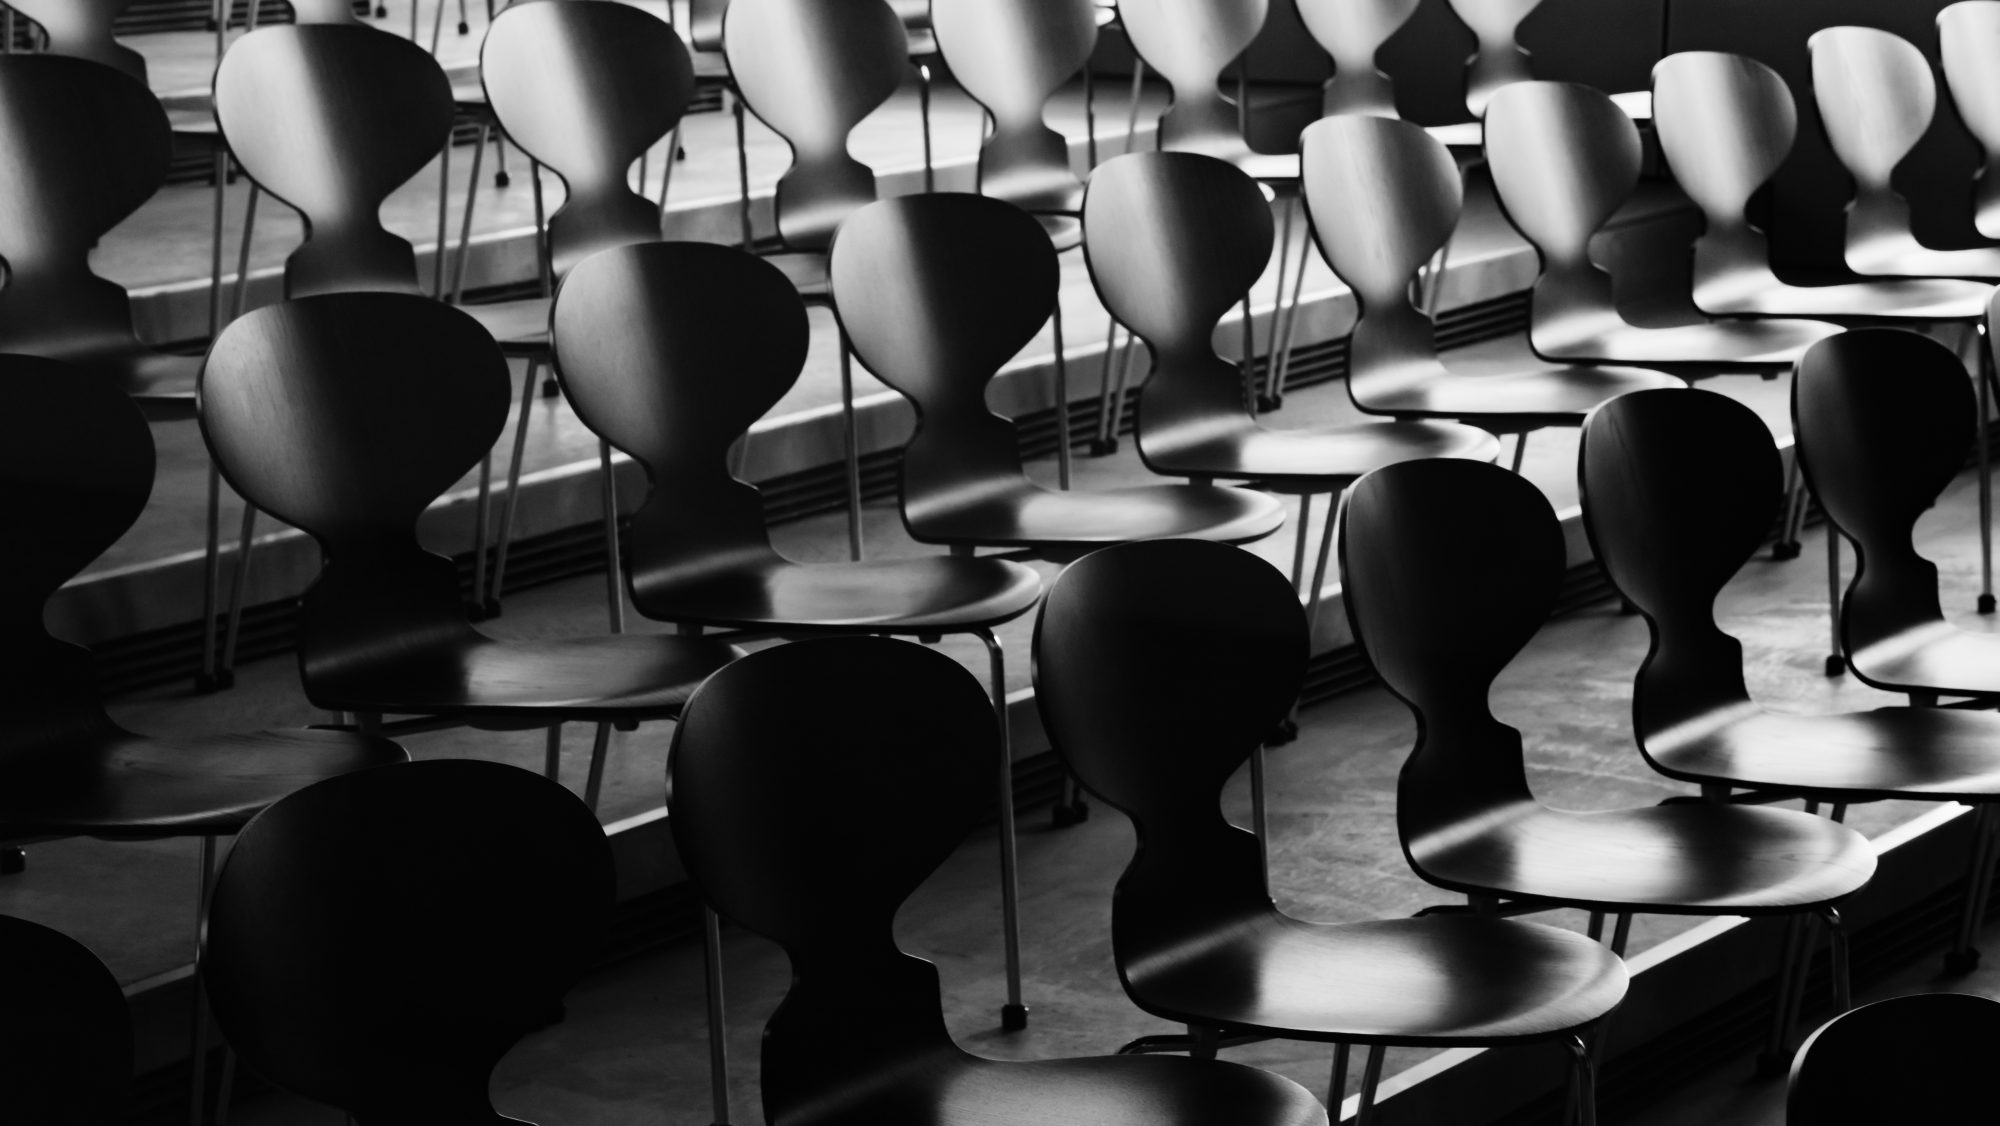 Row of Chairs